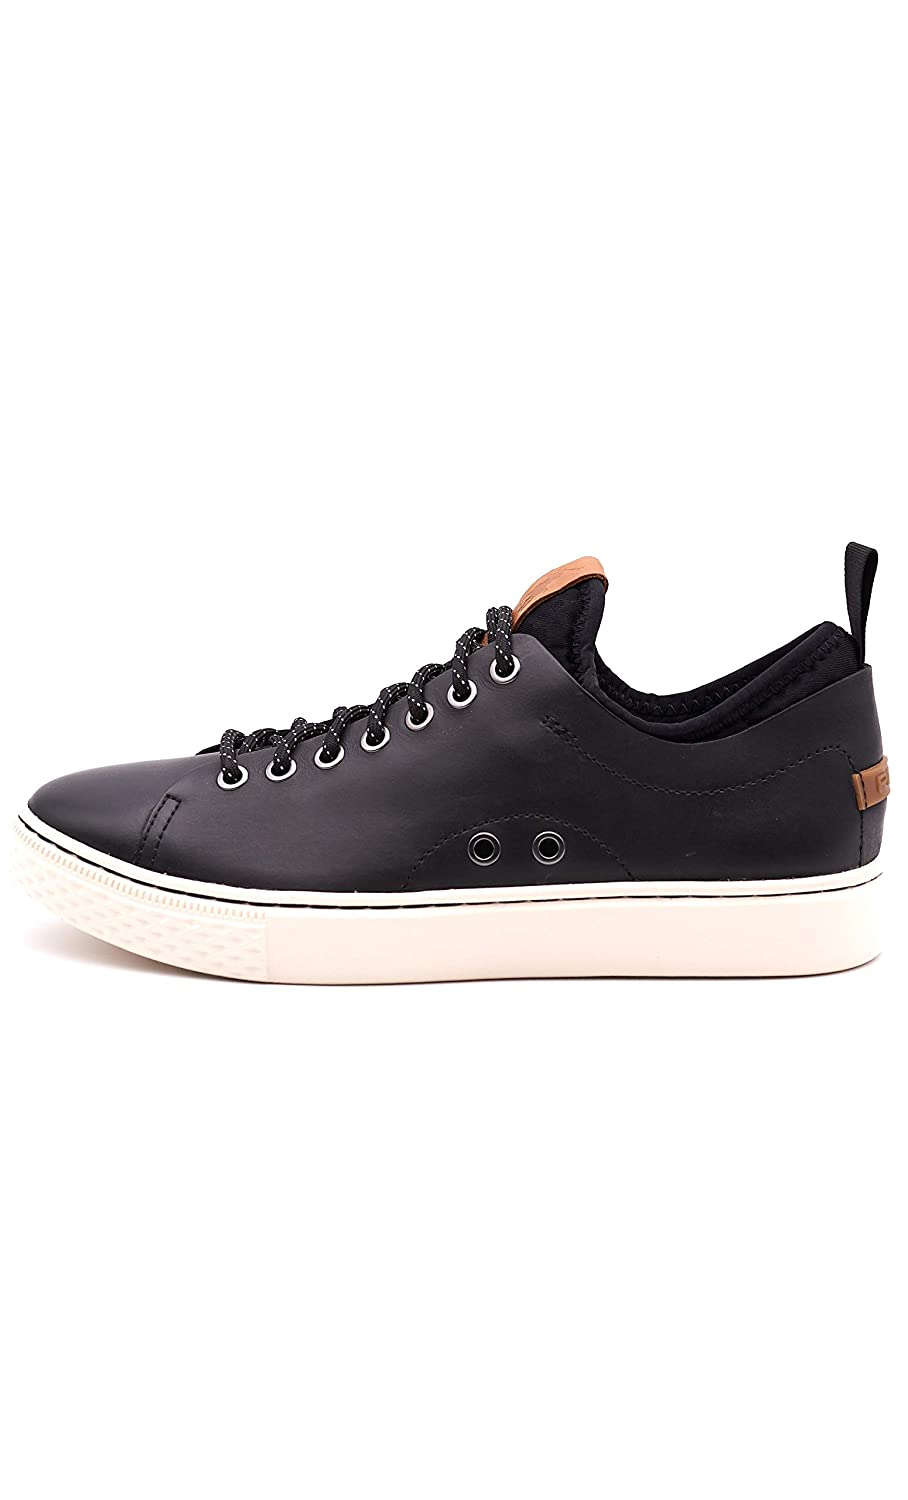 Polo Ralph Lauren Turnschuhe DUNOVIN schwarz Leather Leather Leather 95acff